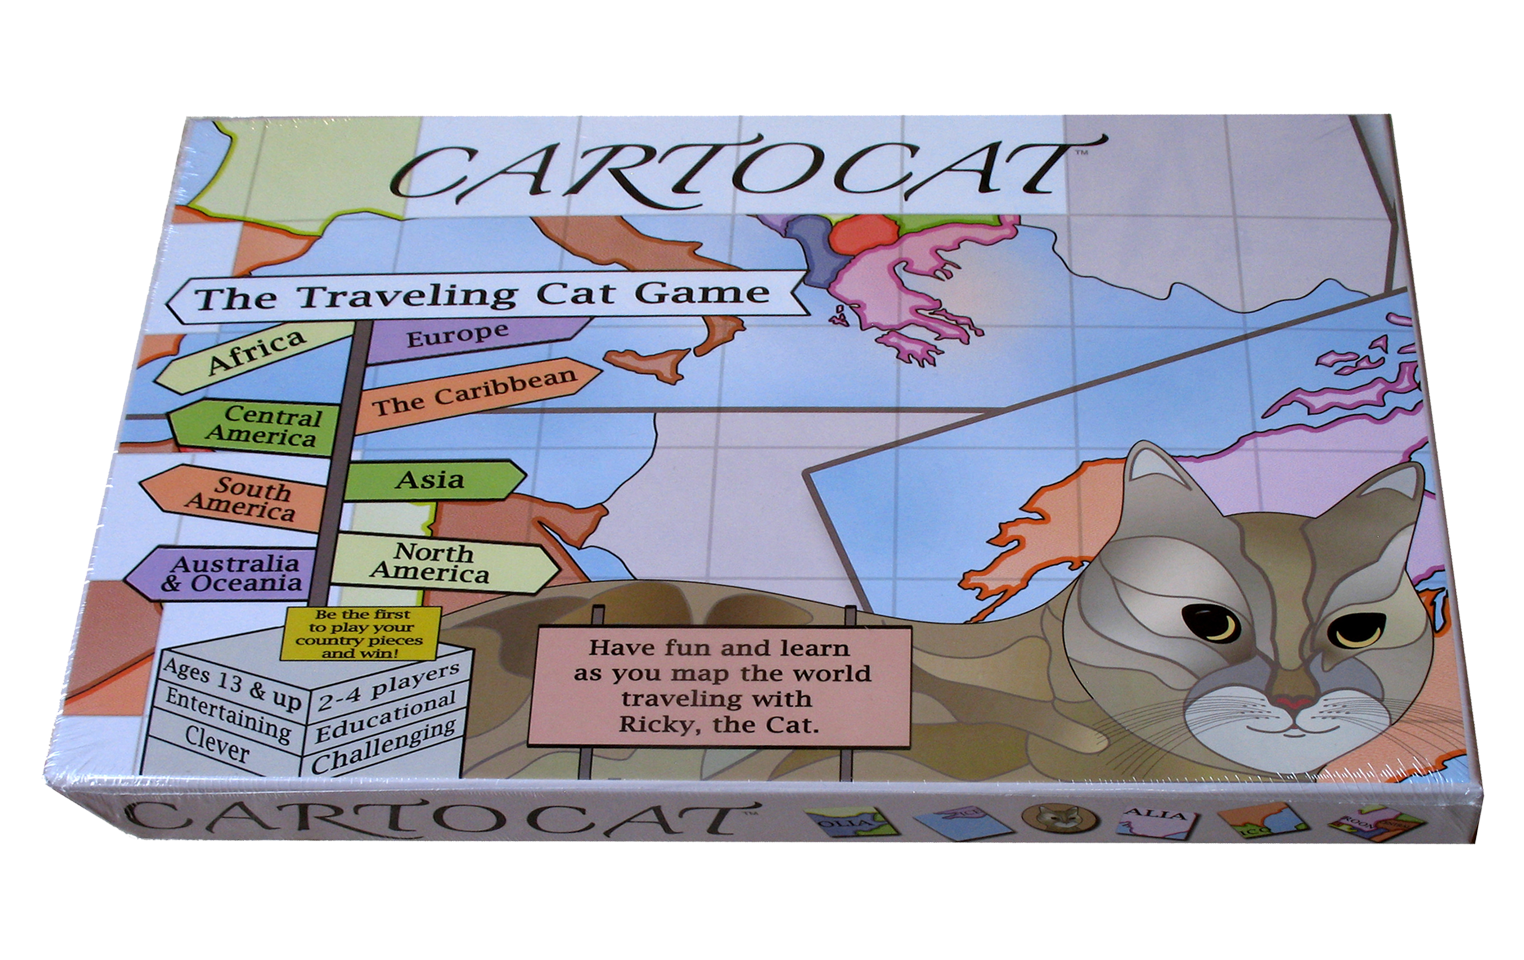 Cartocat The Traveling Cat Game Buy Now